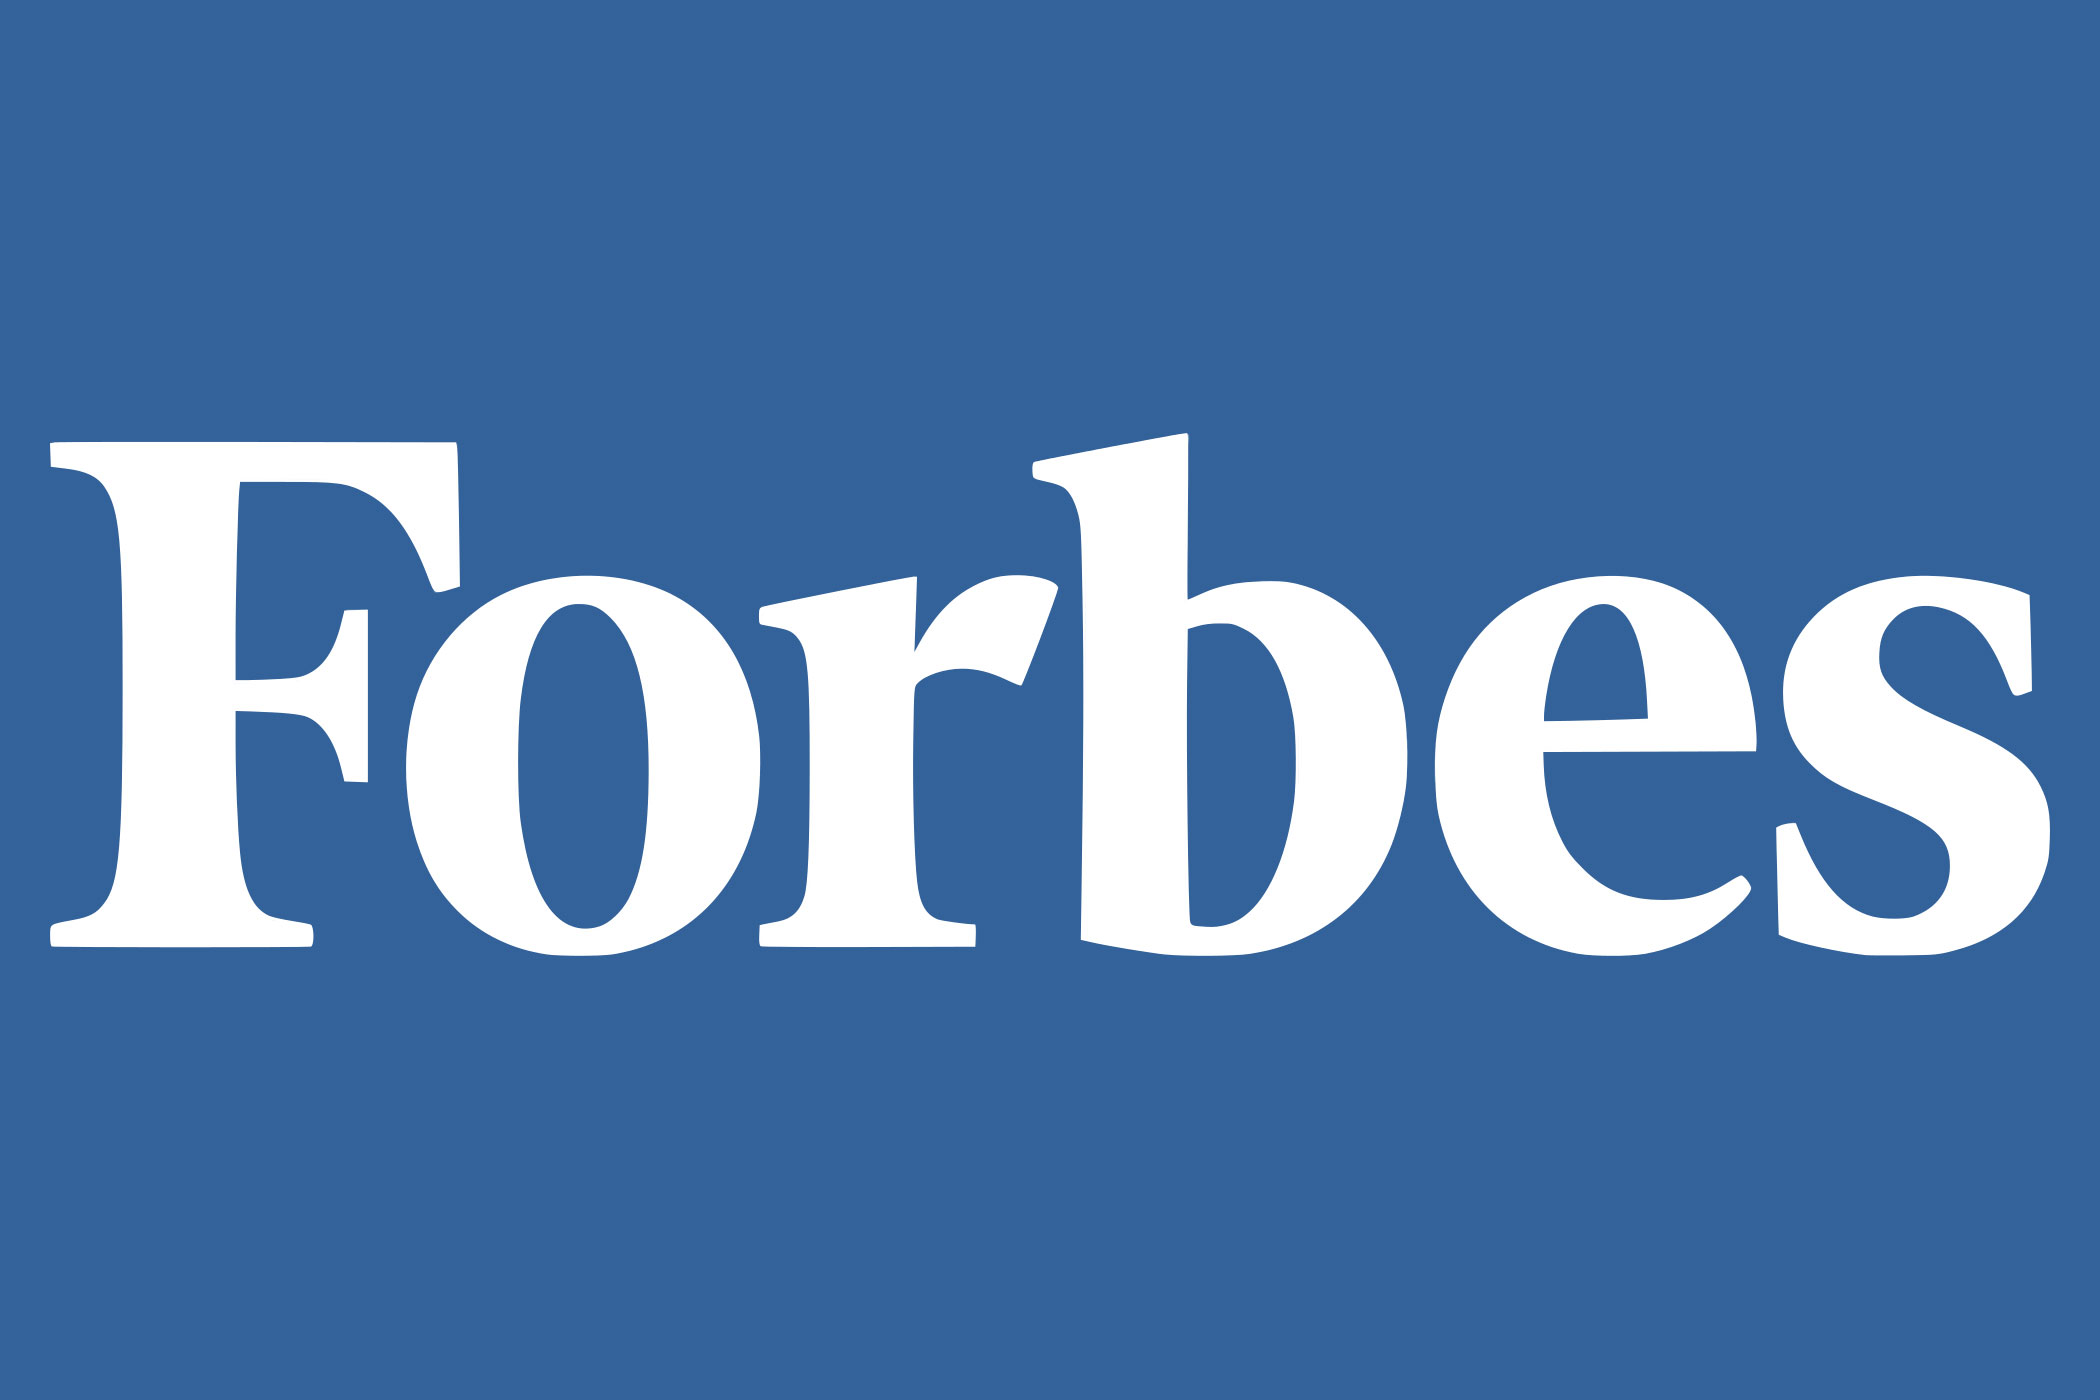 J. Craig Venter and Evan Rachel Wood Join Speaker Lineup for 2017 Forbes Under 30 Summit - Aug. 29, 2017